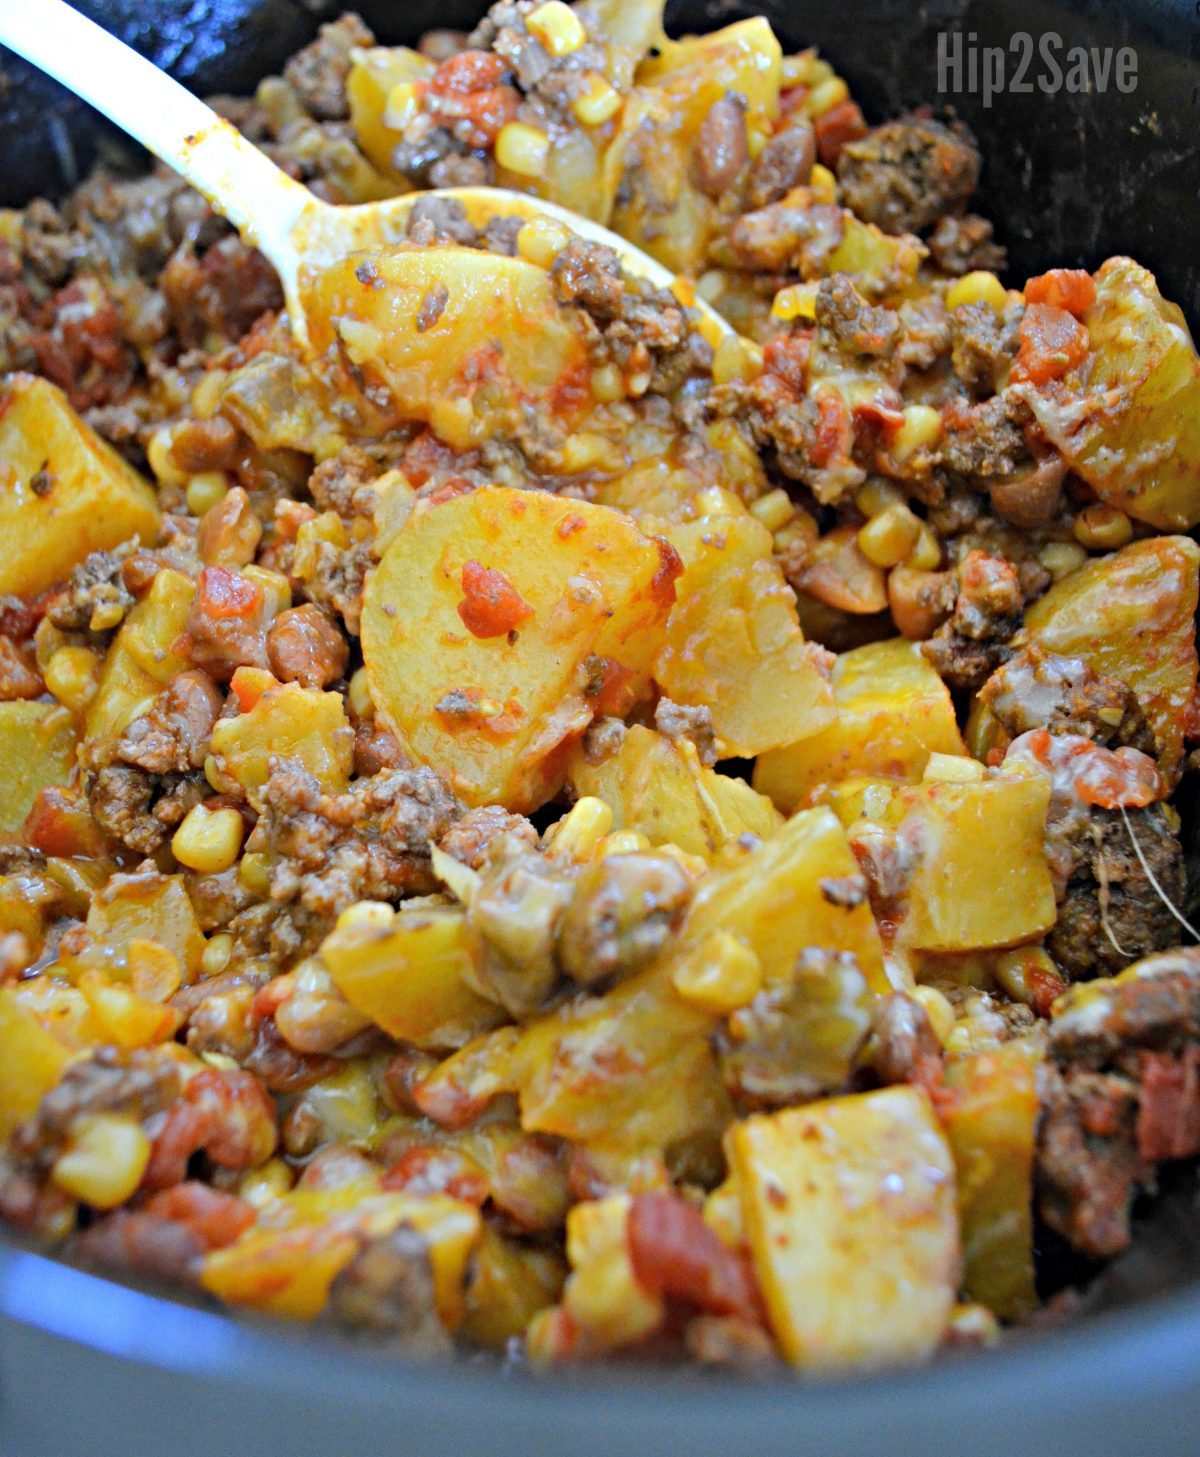 Meal Ideas For Ground Beef: Easy Slow Cooker Weeknight Meal Idea